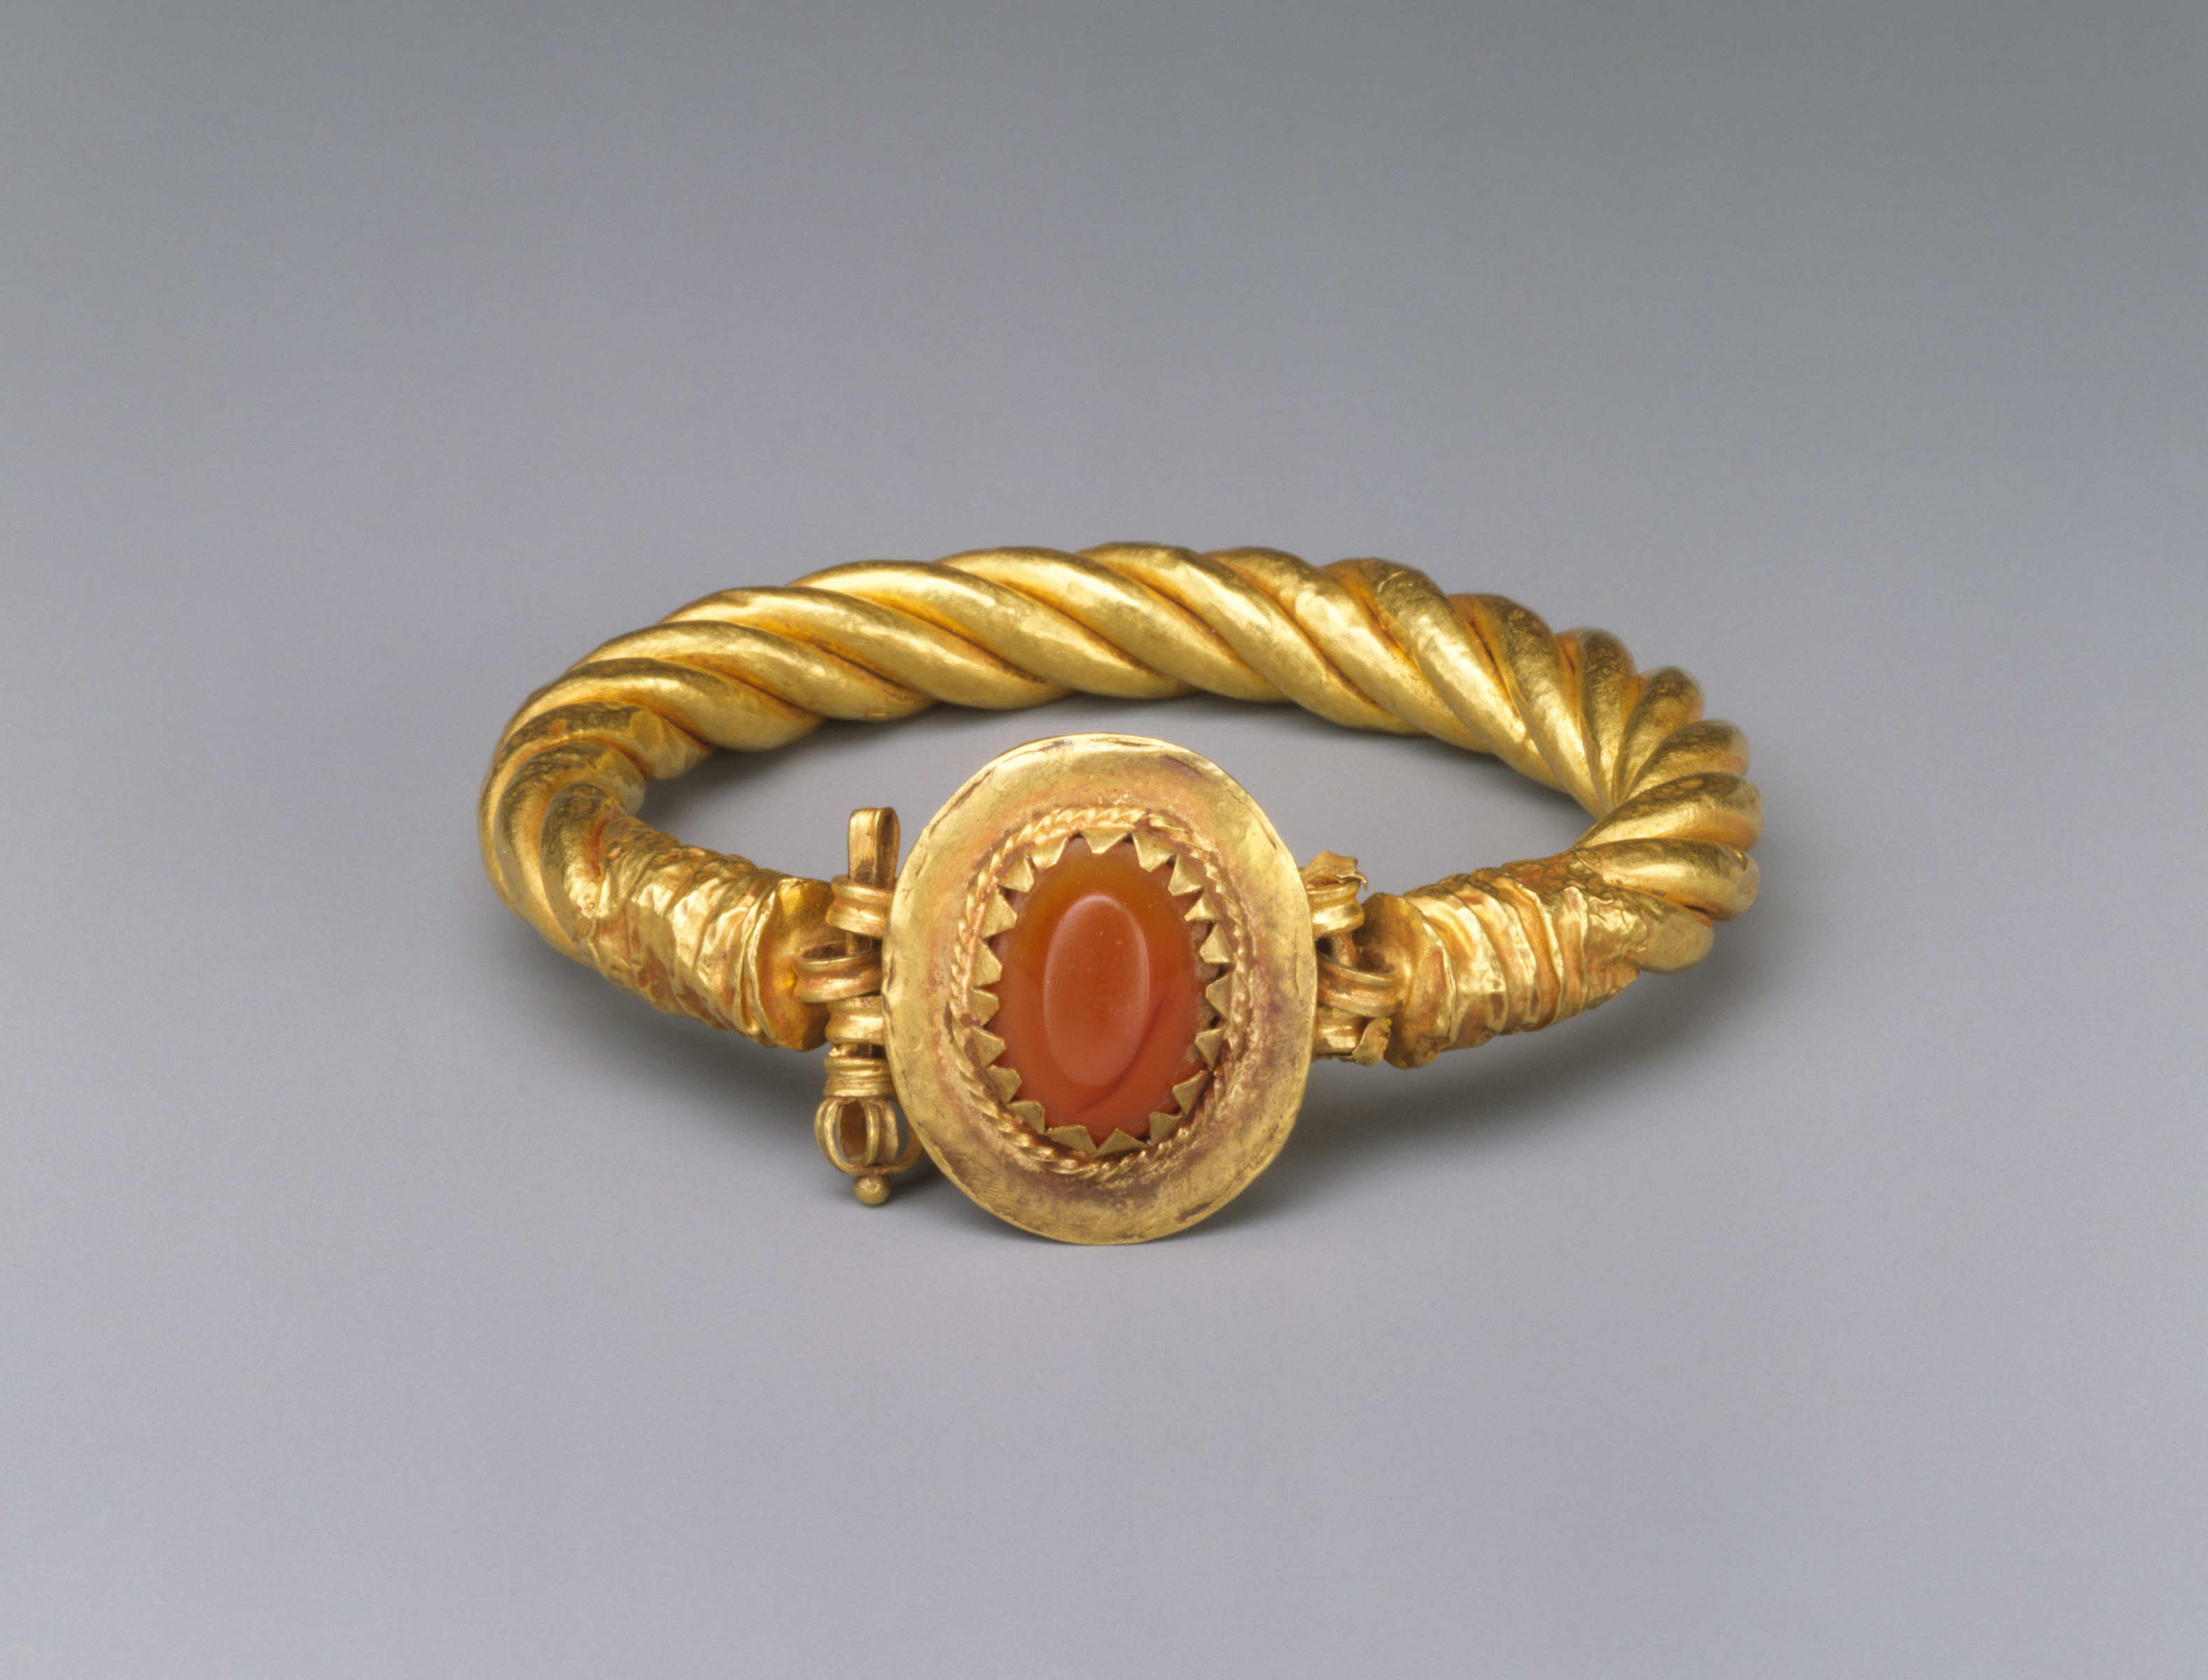 met roman ct art imperial collection the search with stone carnelian bracelet additional late gold a images eds